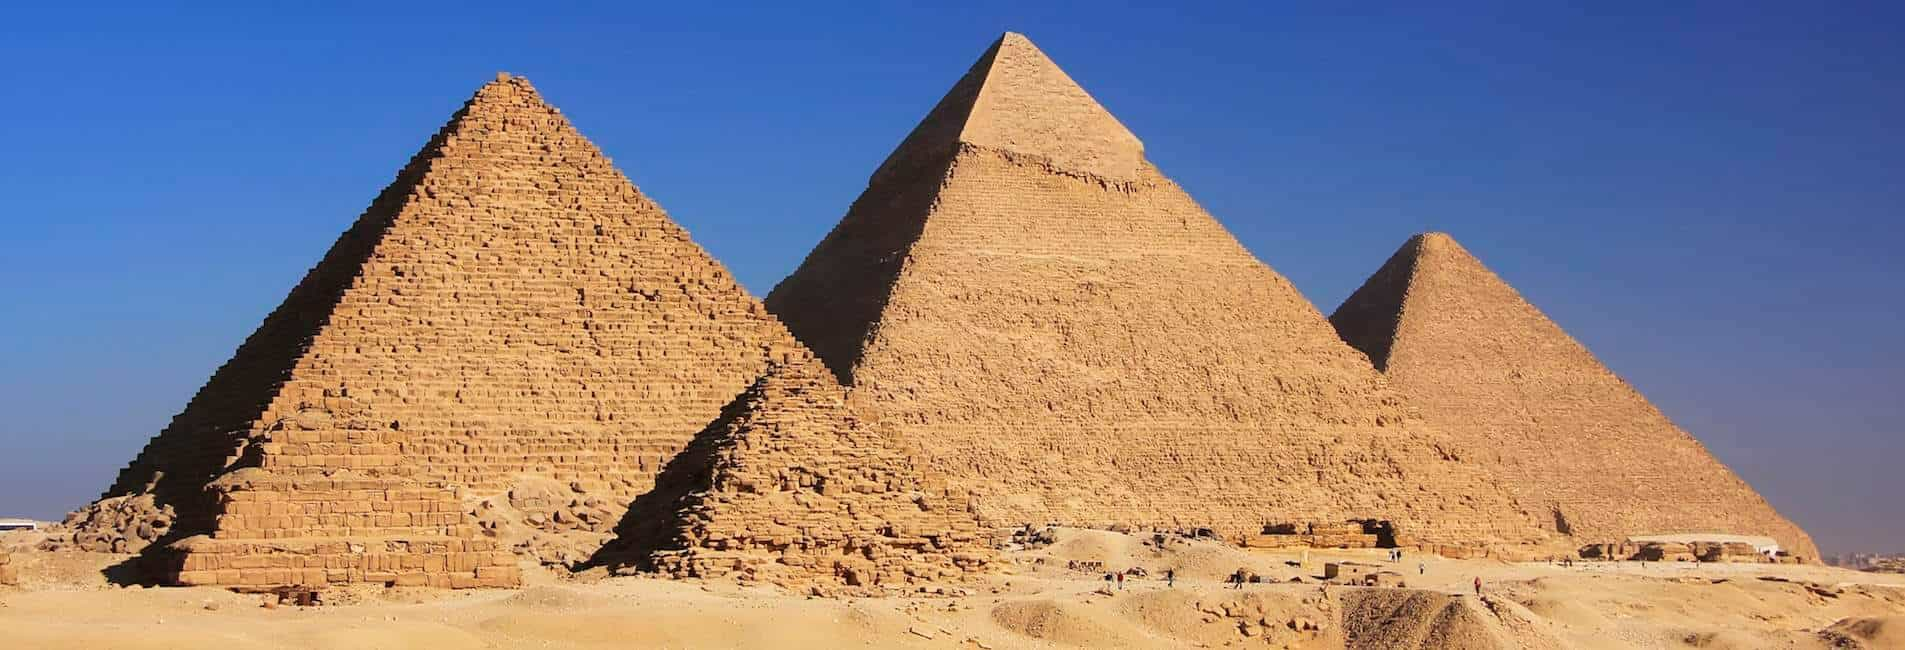 A private tour to The Great Pyramids of Giza is a must when planning your dream trip to Egypt